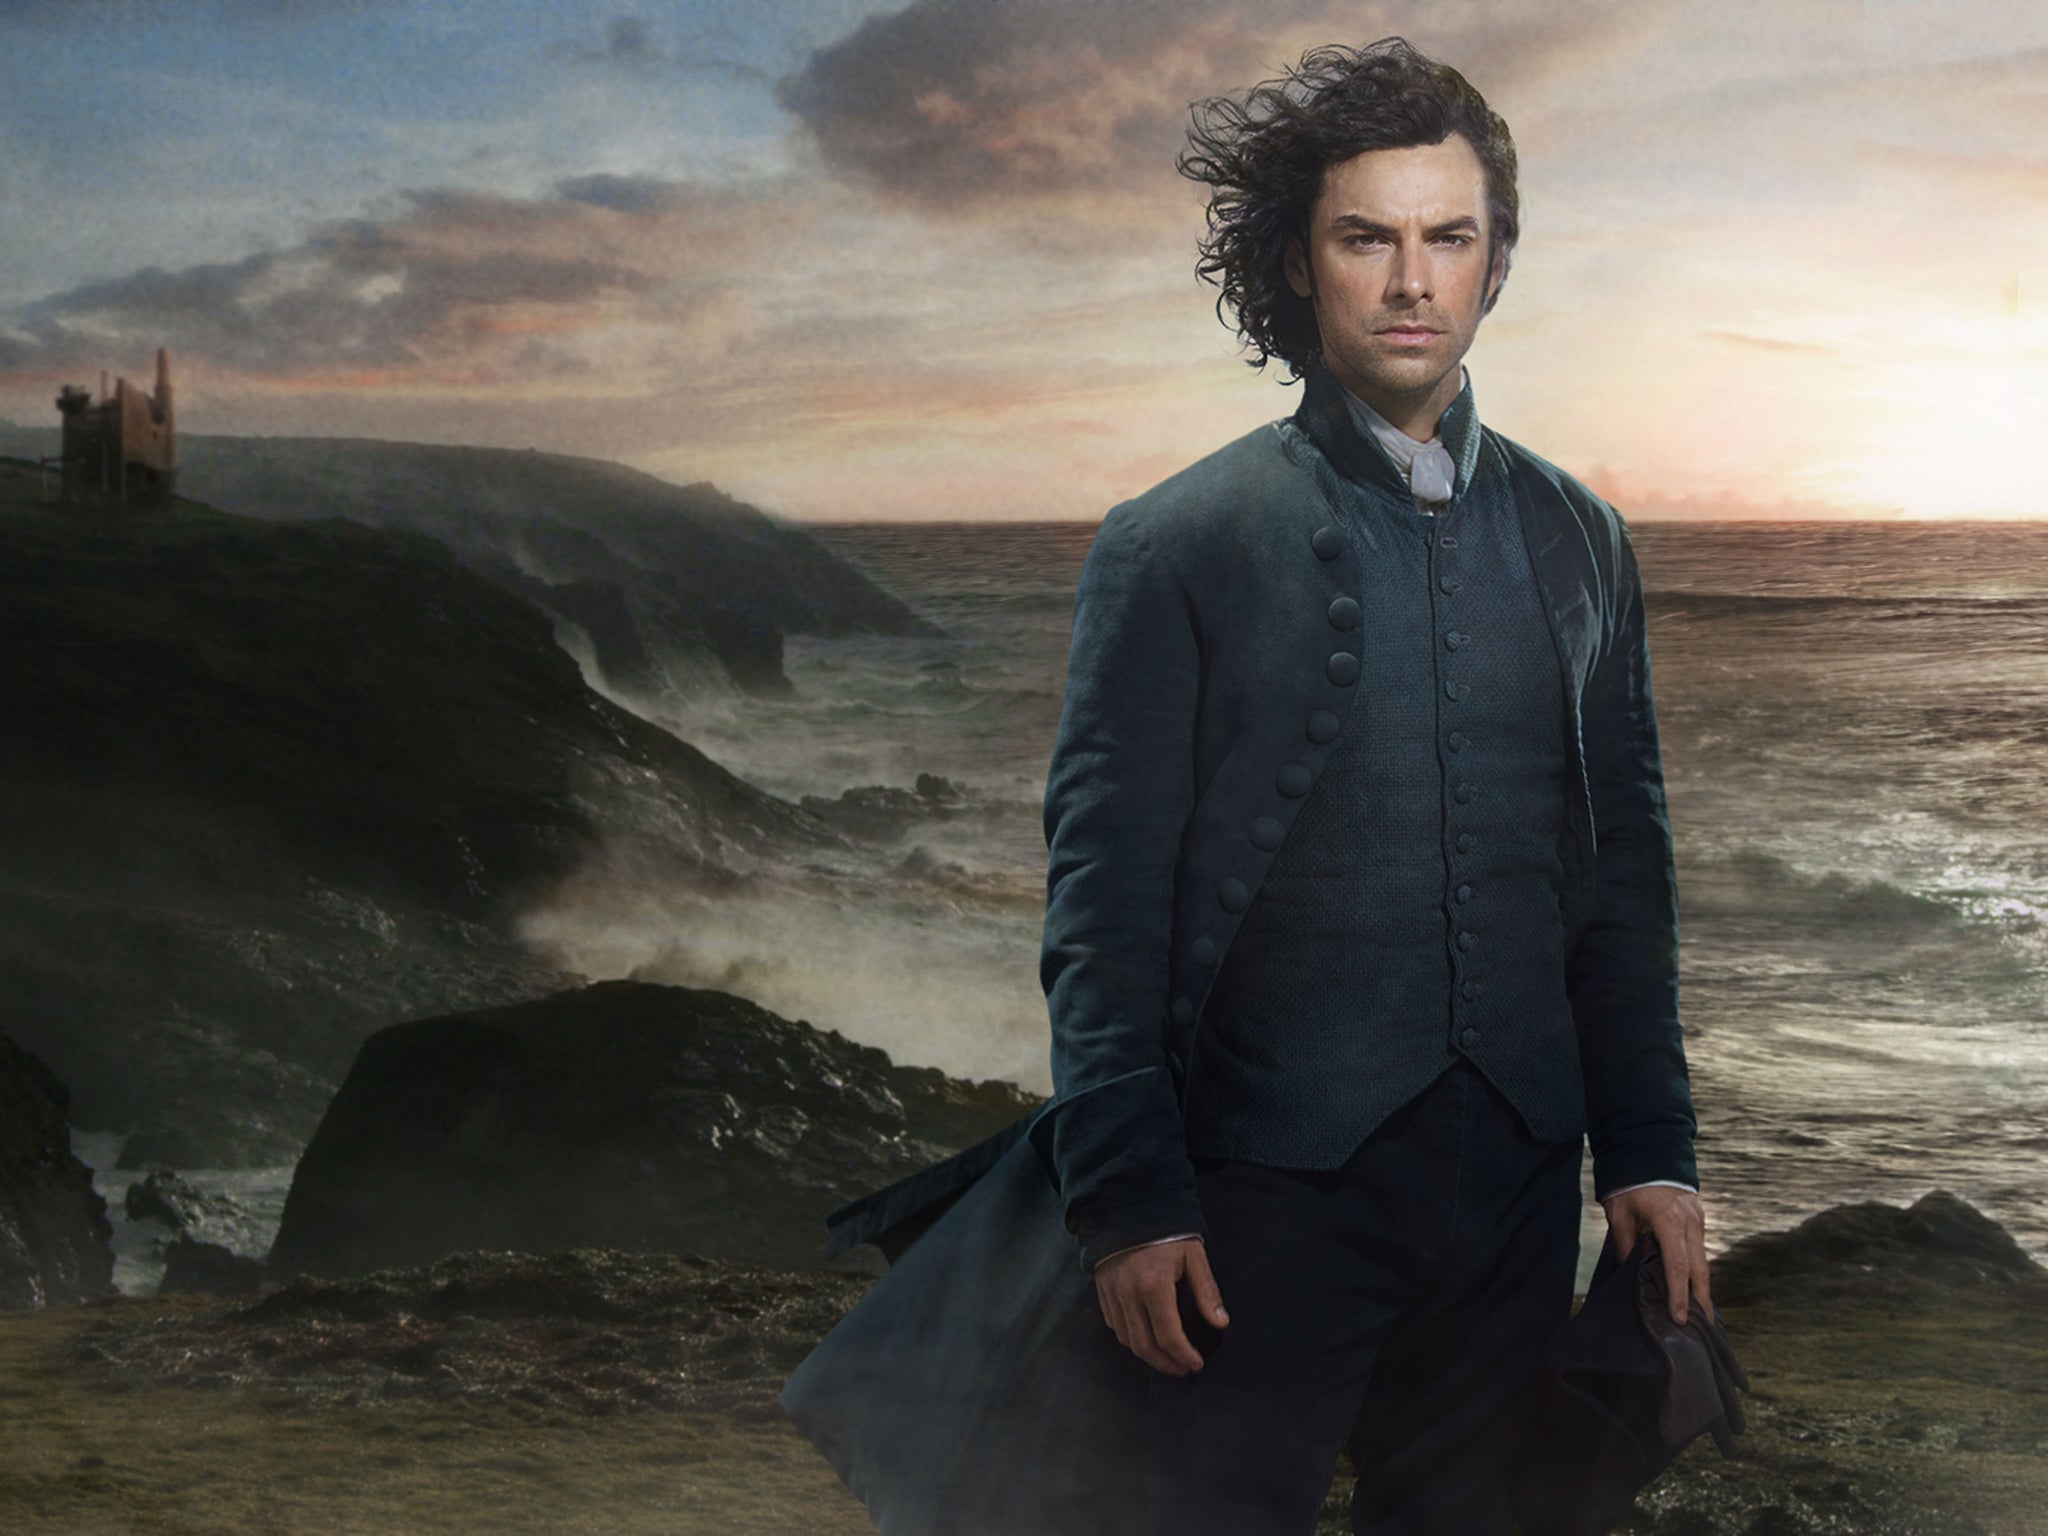 Poldark books in order - Poldark Series 3 Bbc Confirms New Season As Aidan Turner Favours Cornish Moors Over Possible James Bond Role The Independent